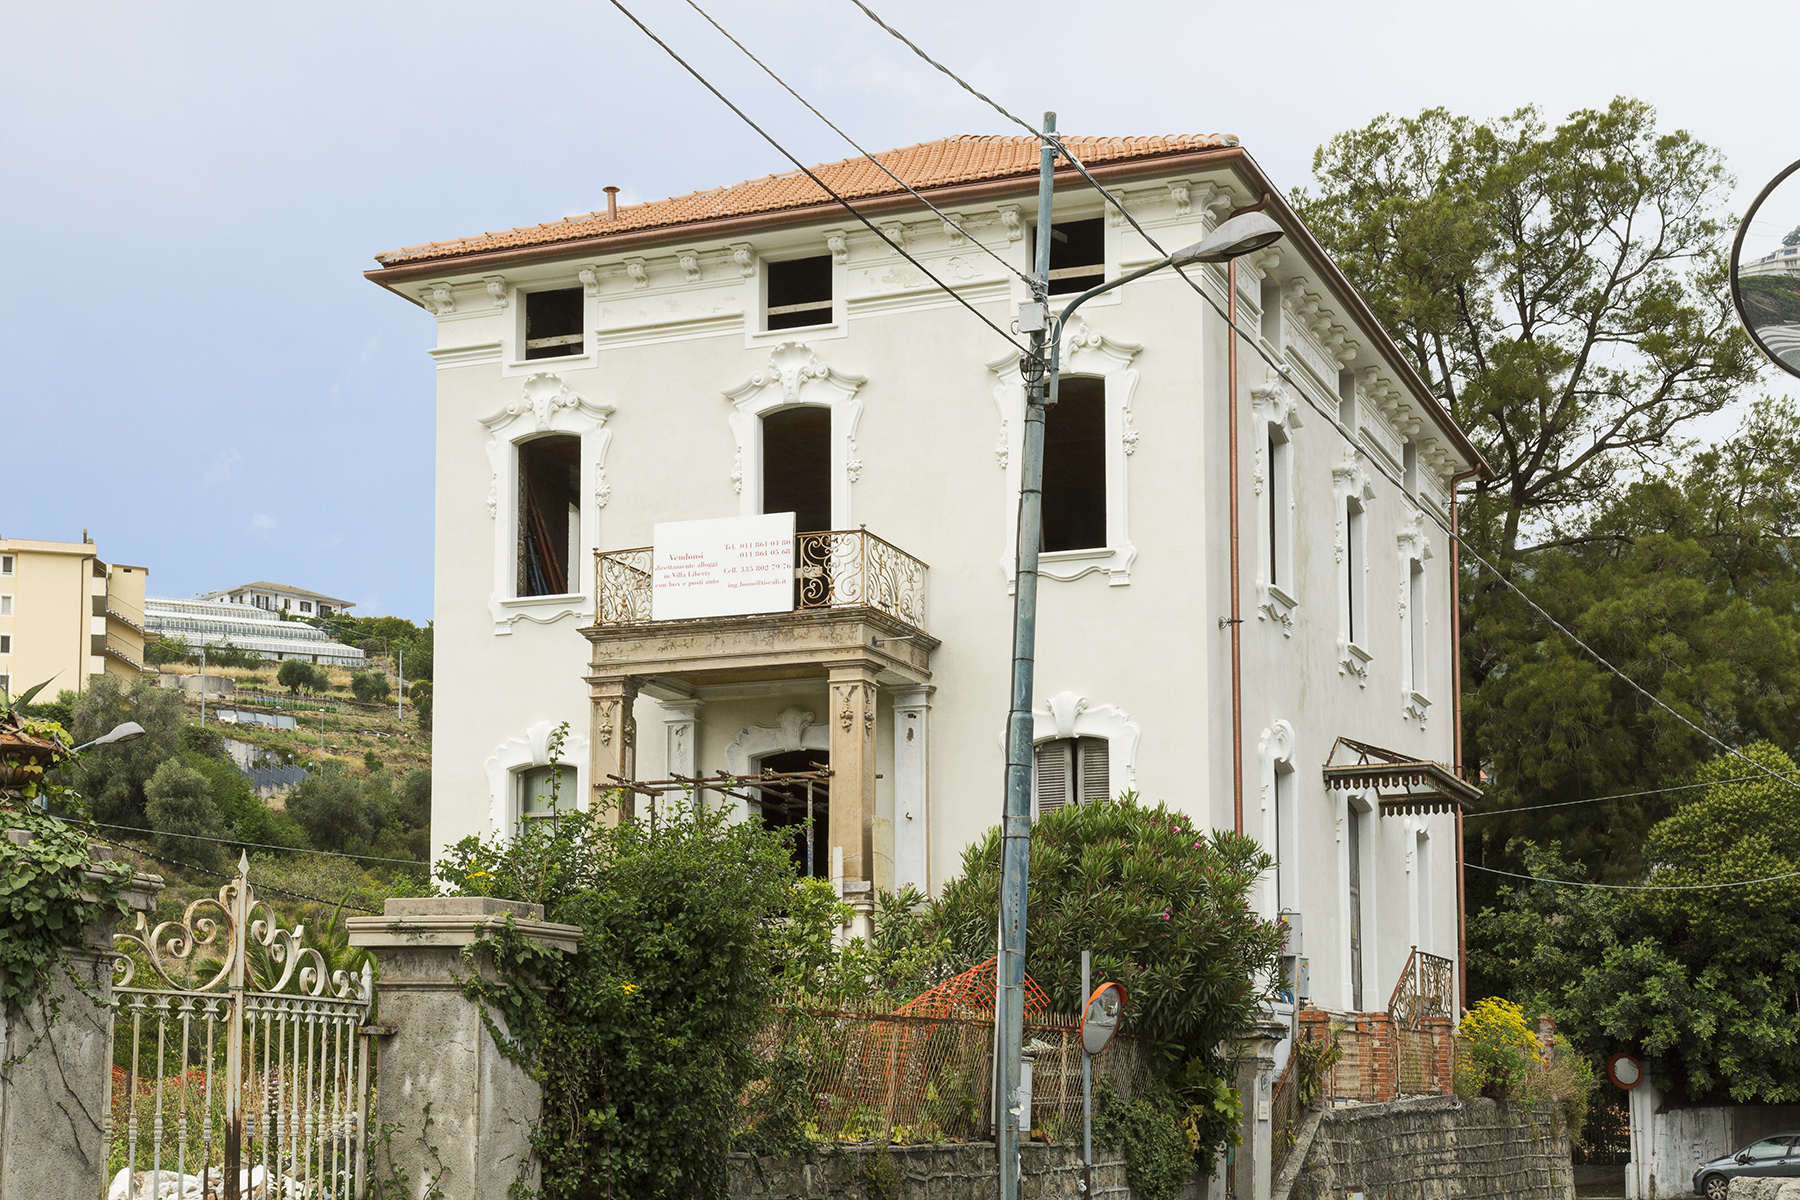 Additional photo for property listing at Liberty style Villa in Sanremo Corso degli Inglesi Sanremo, Imperia 18038 Italy